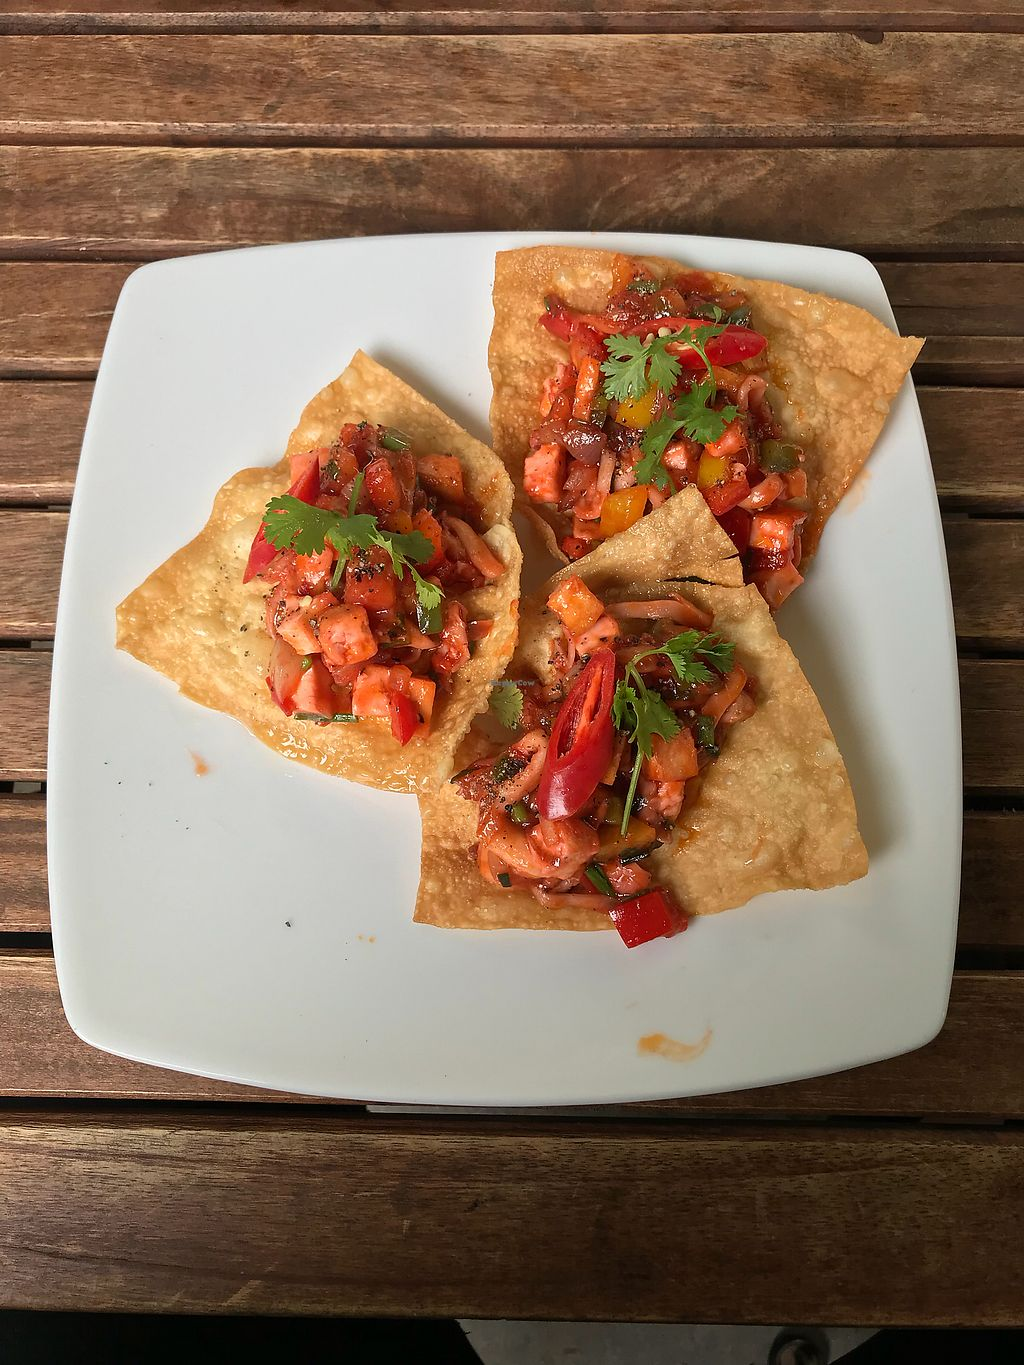 """Photo of What Else Cafe  by <a href=""""/members/profile/vegetariangirl"""">vegetariangirl</a> <br/>Fried wonton with a fruit salsa and tofu  <br/> January 20, 2018  - <a href='/contact/abuse/image/101159/348752'>Report</a>"""